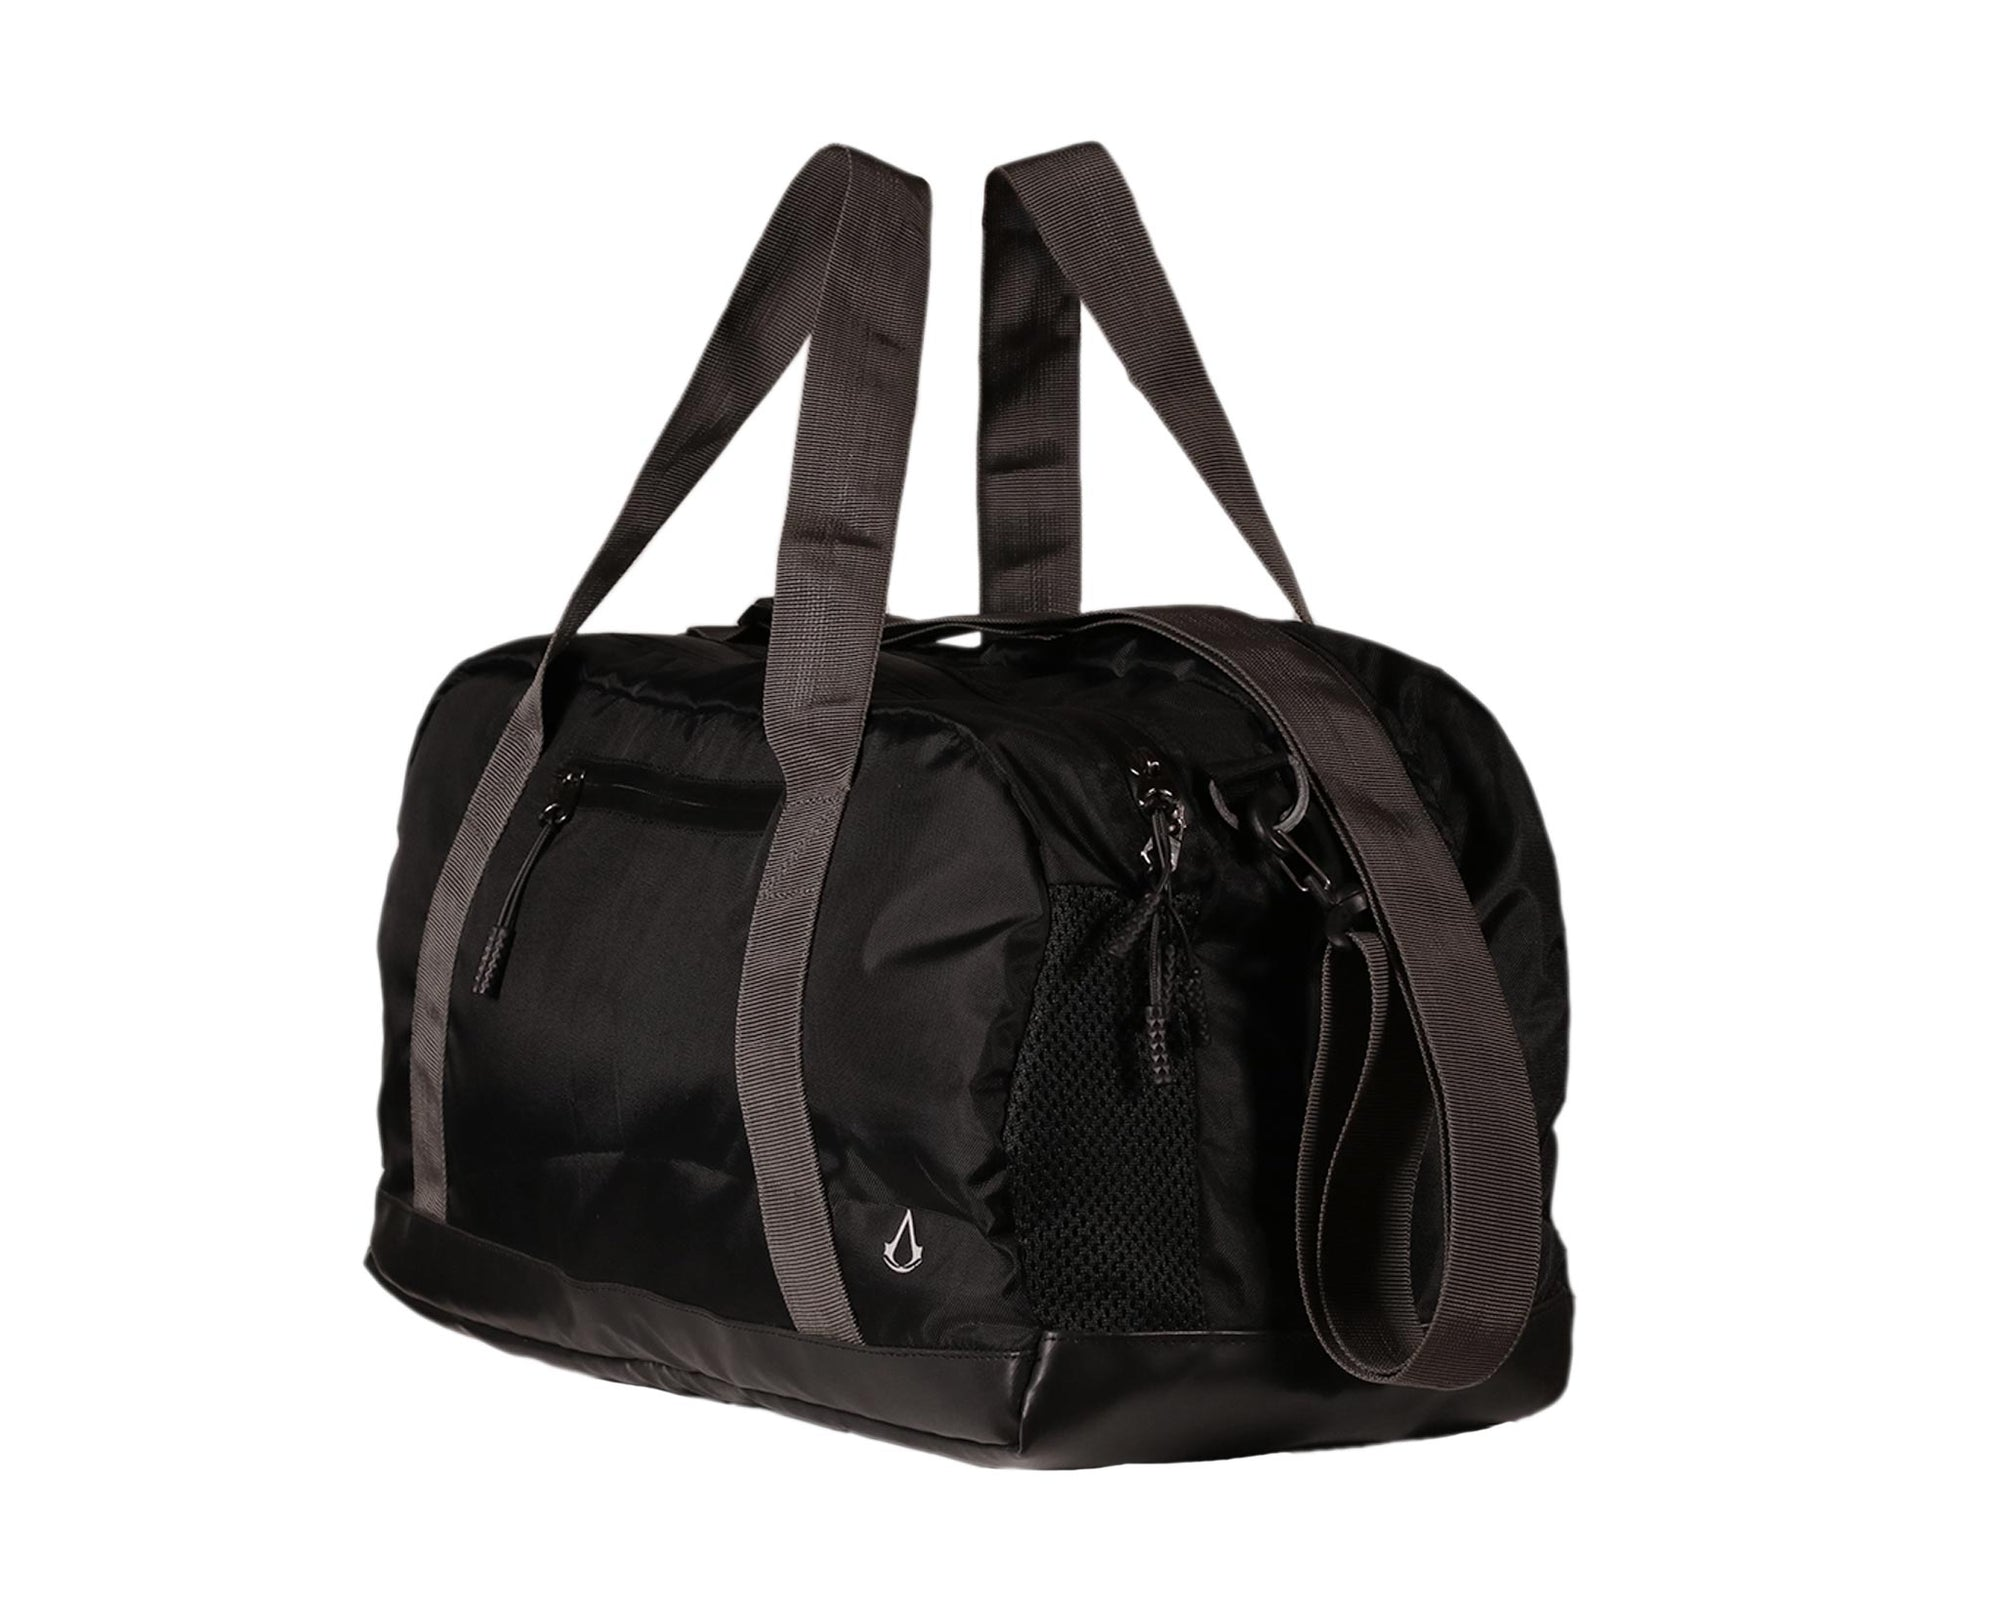 Assassin's Creed Kinetic Gym Duffel Bag